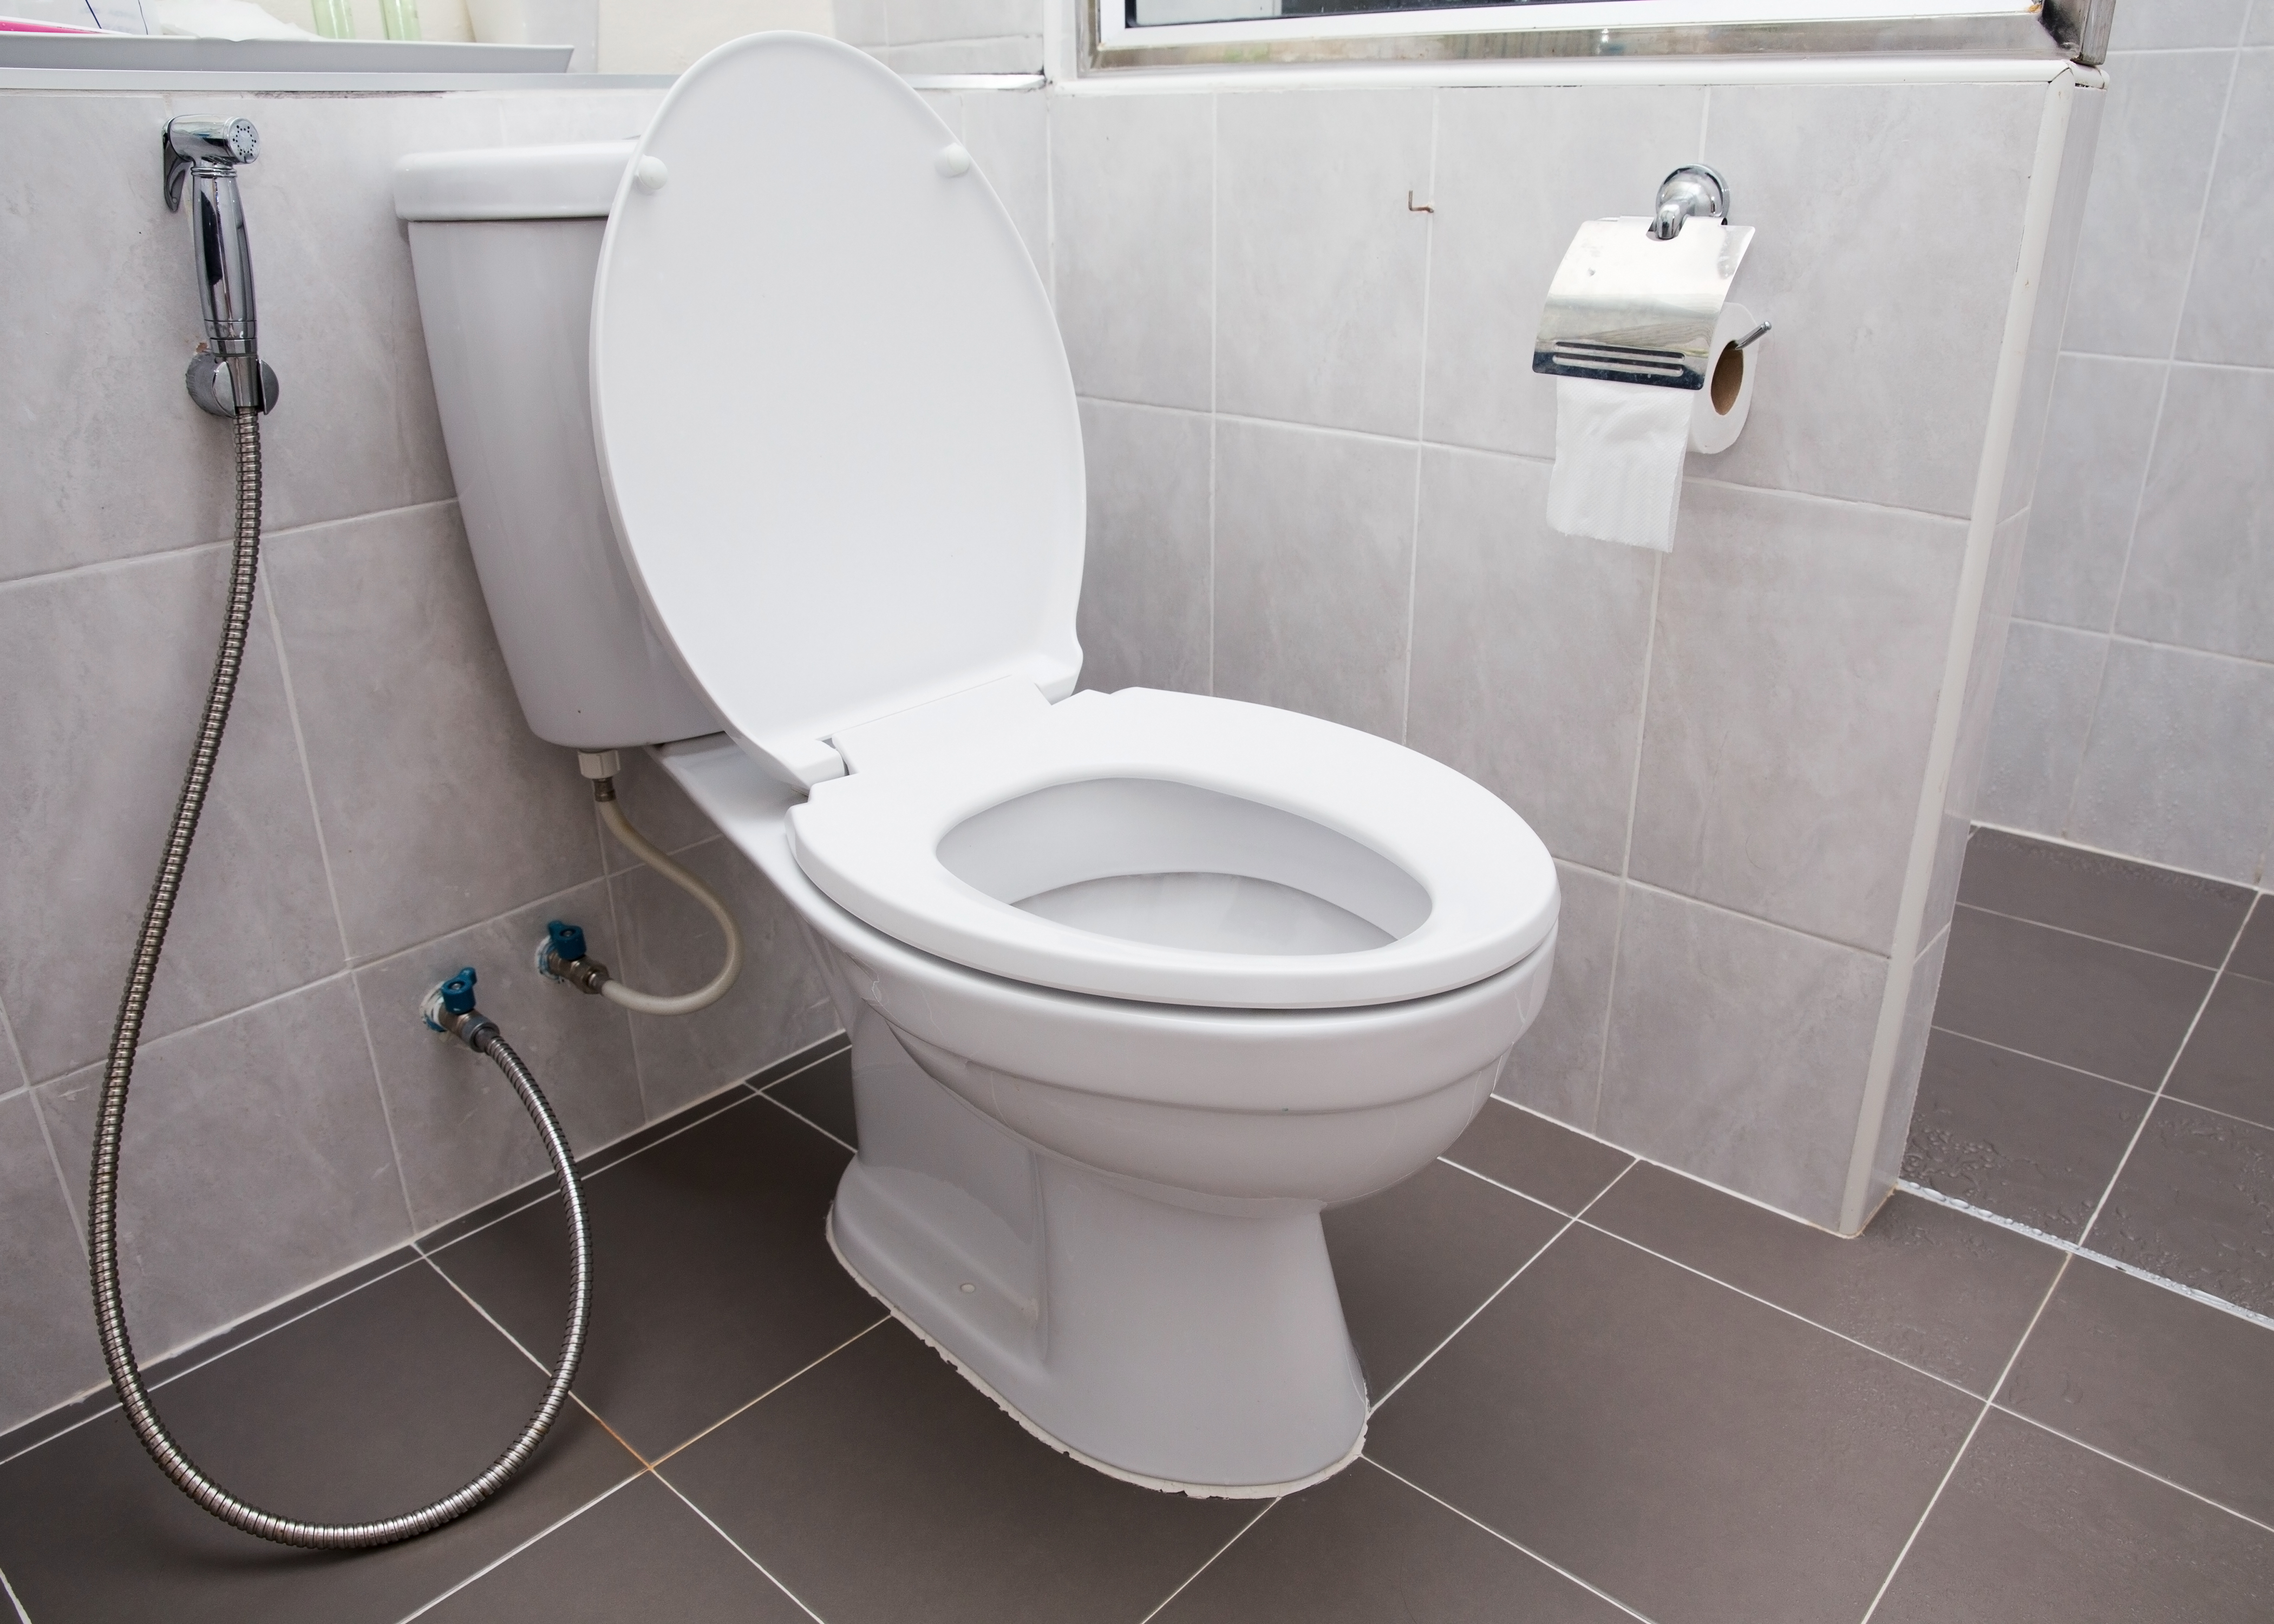 toilet seat. toilet The case against always leaving the seat down  Vox